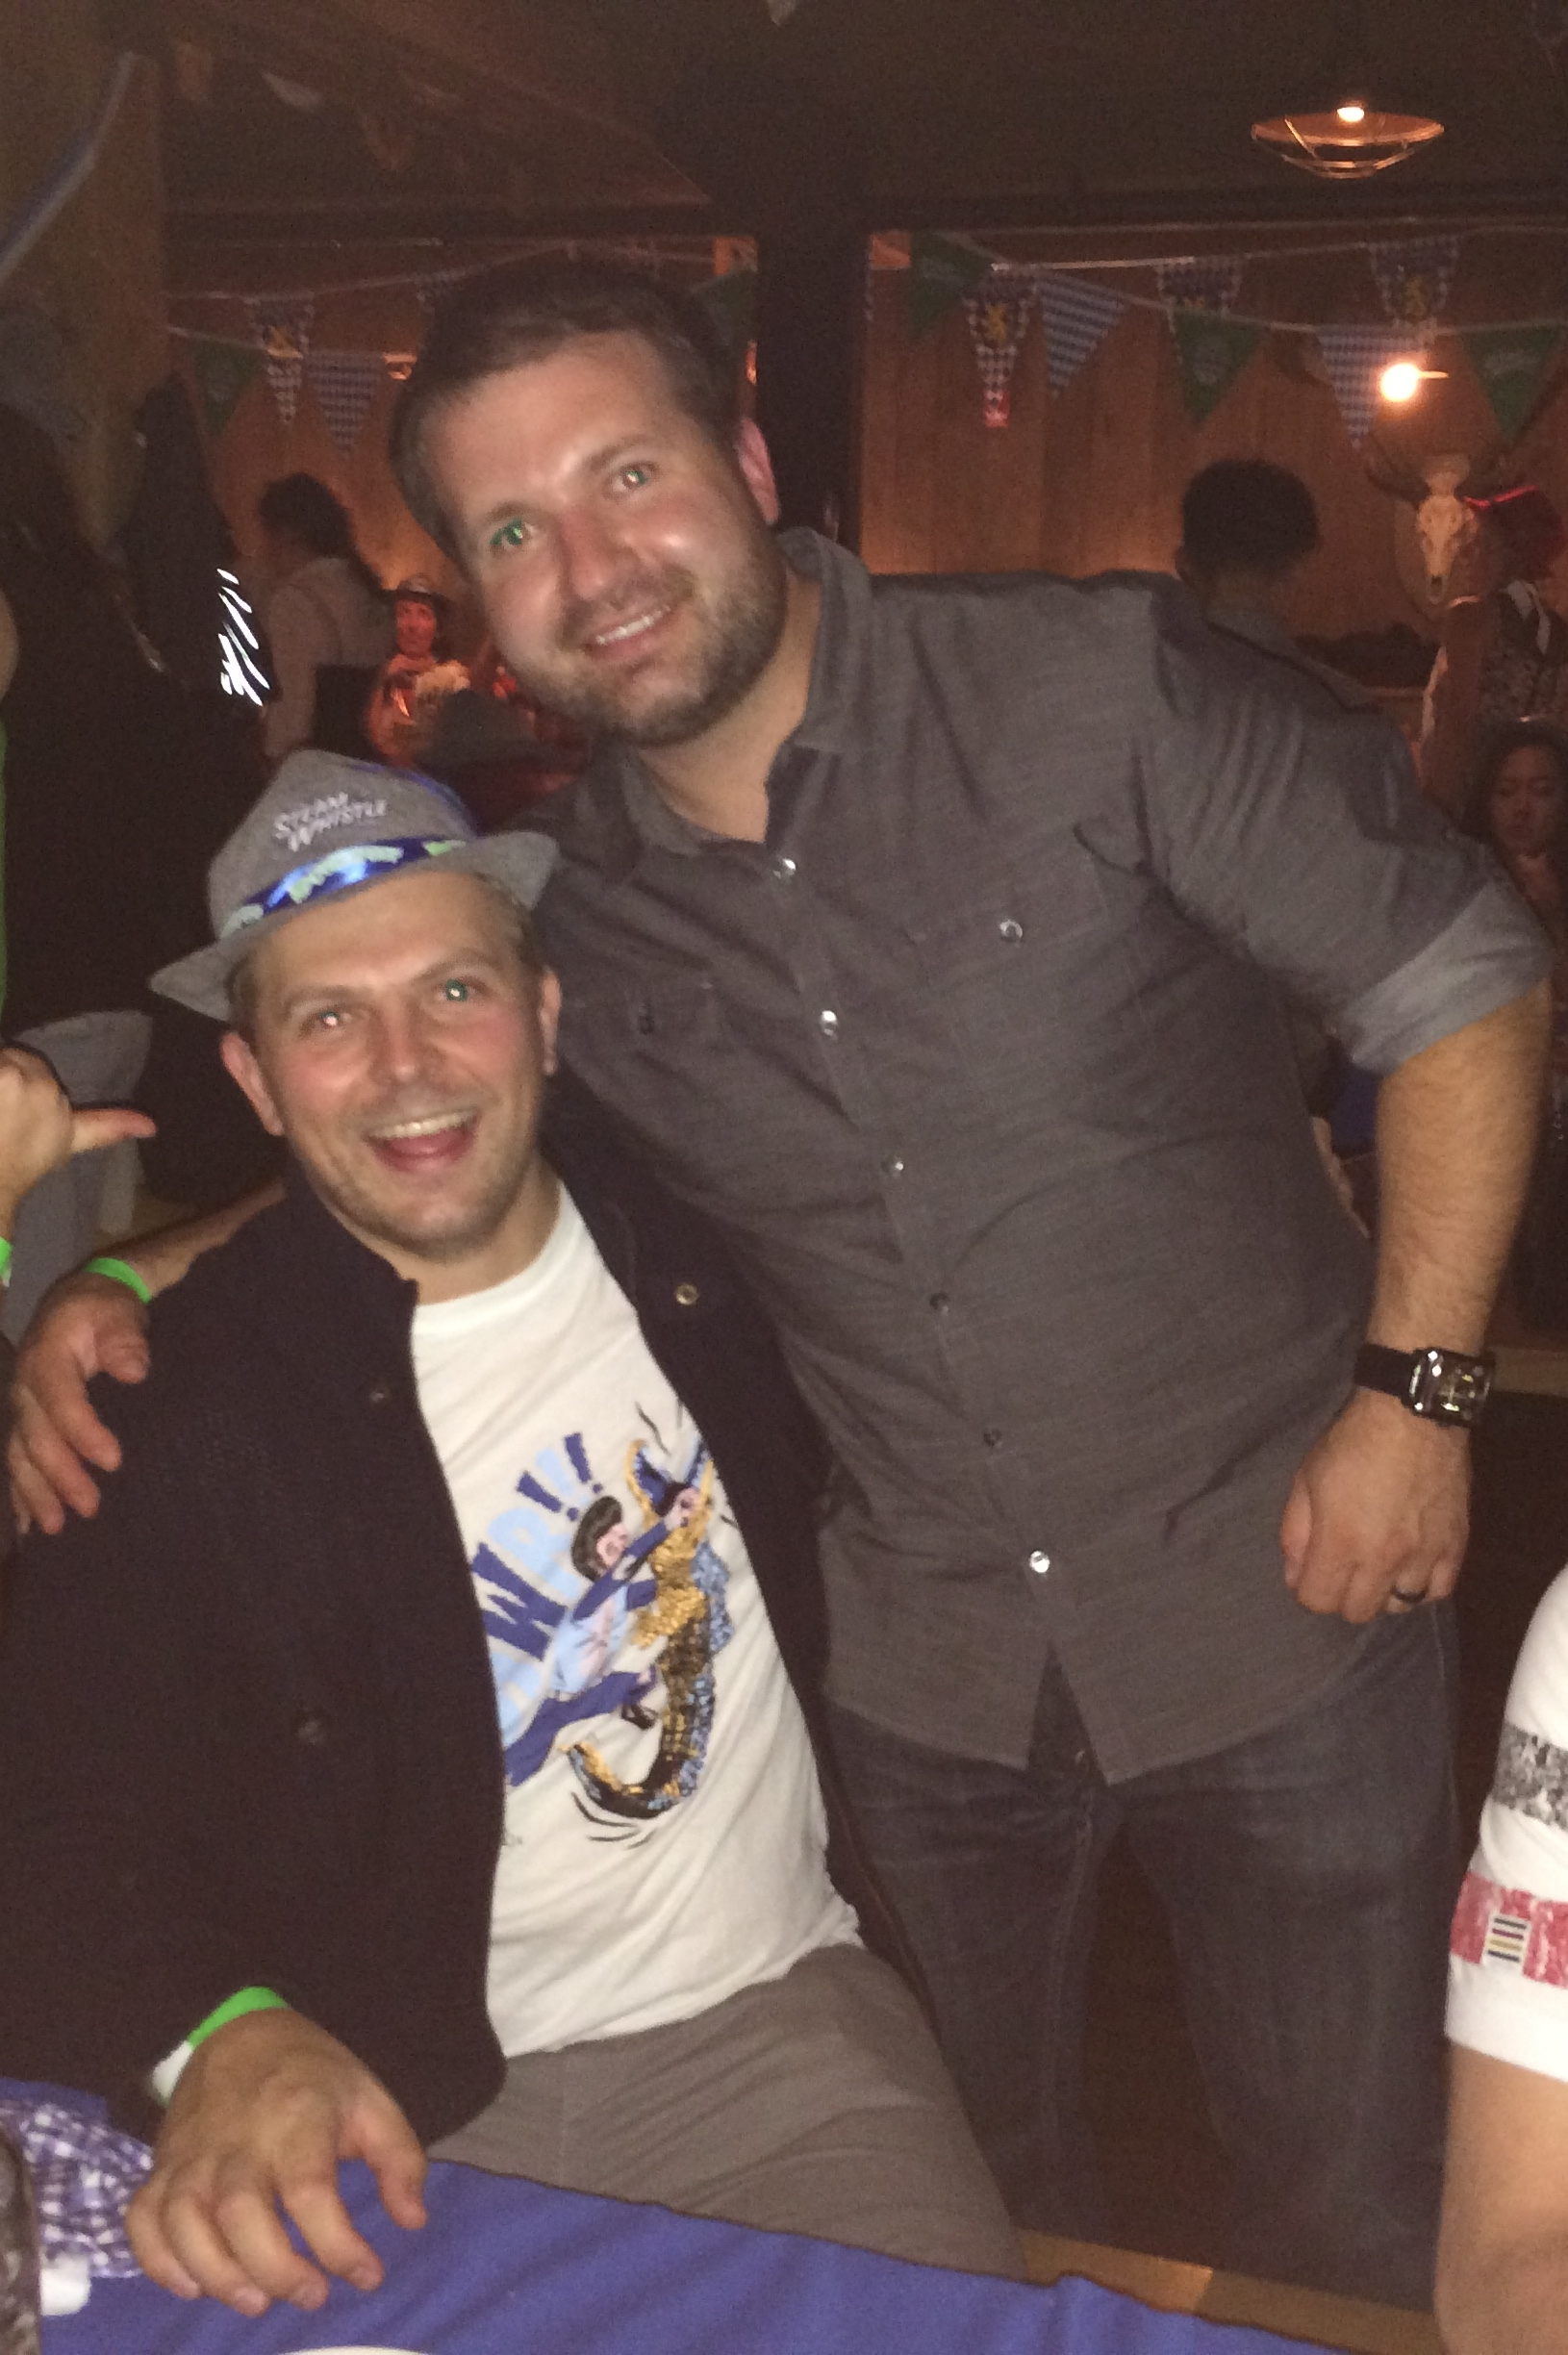 Brian and Kevin at Wurst for Oktoberfest 2014